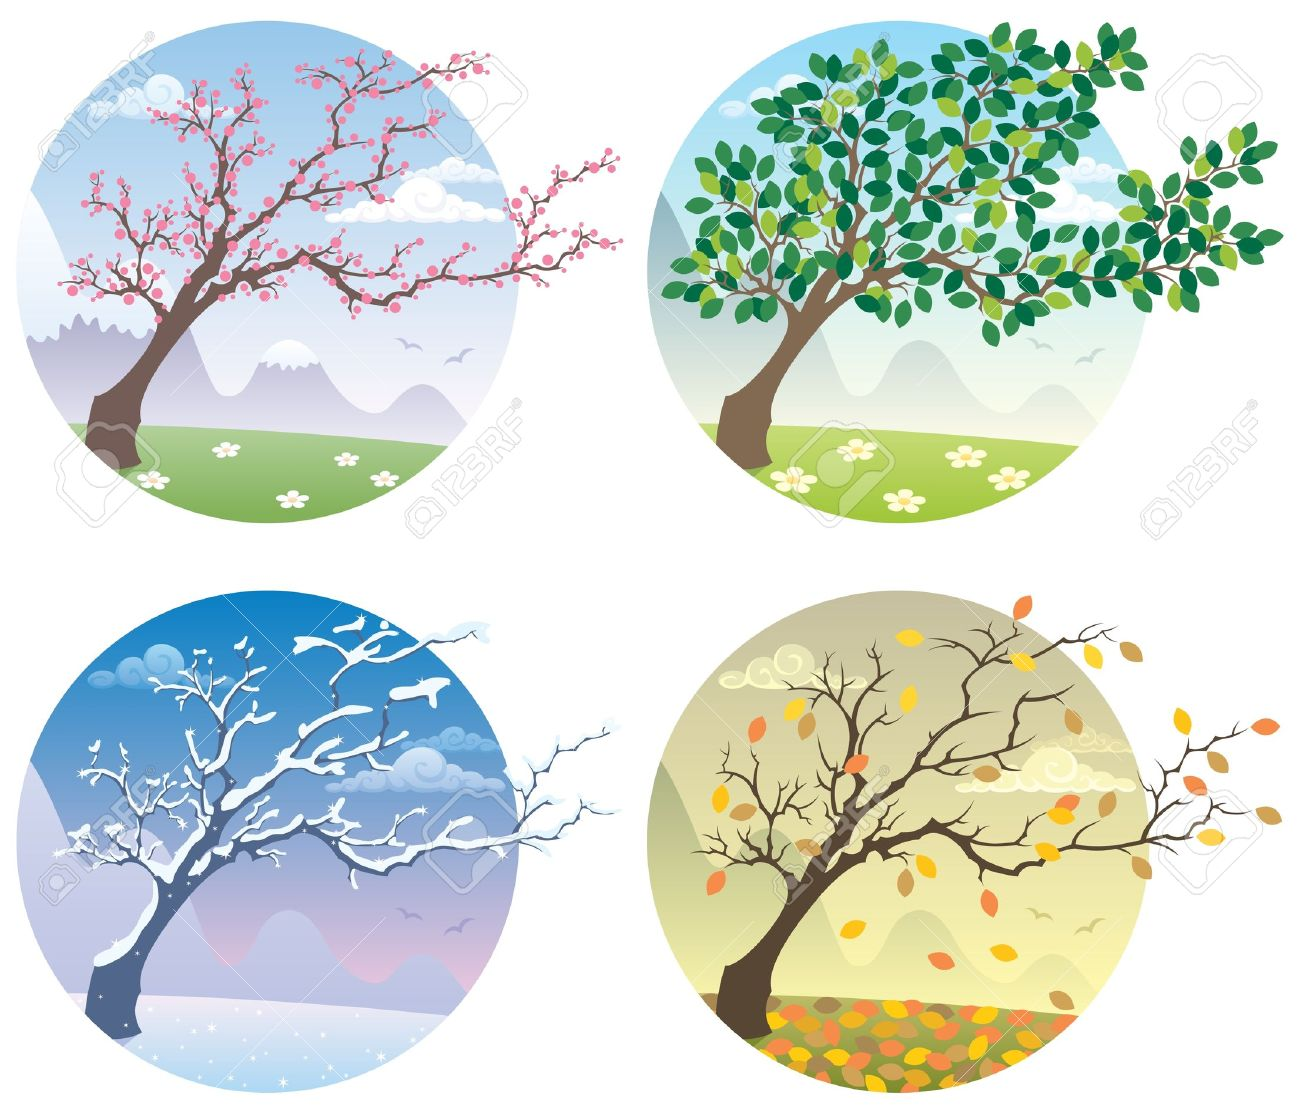 Cartoon Illustration Of A Tree During The Four Seasons. No.